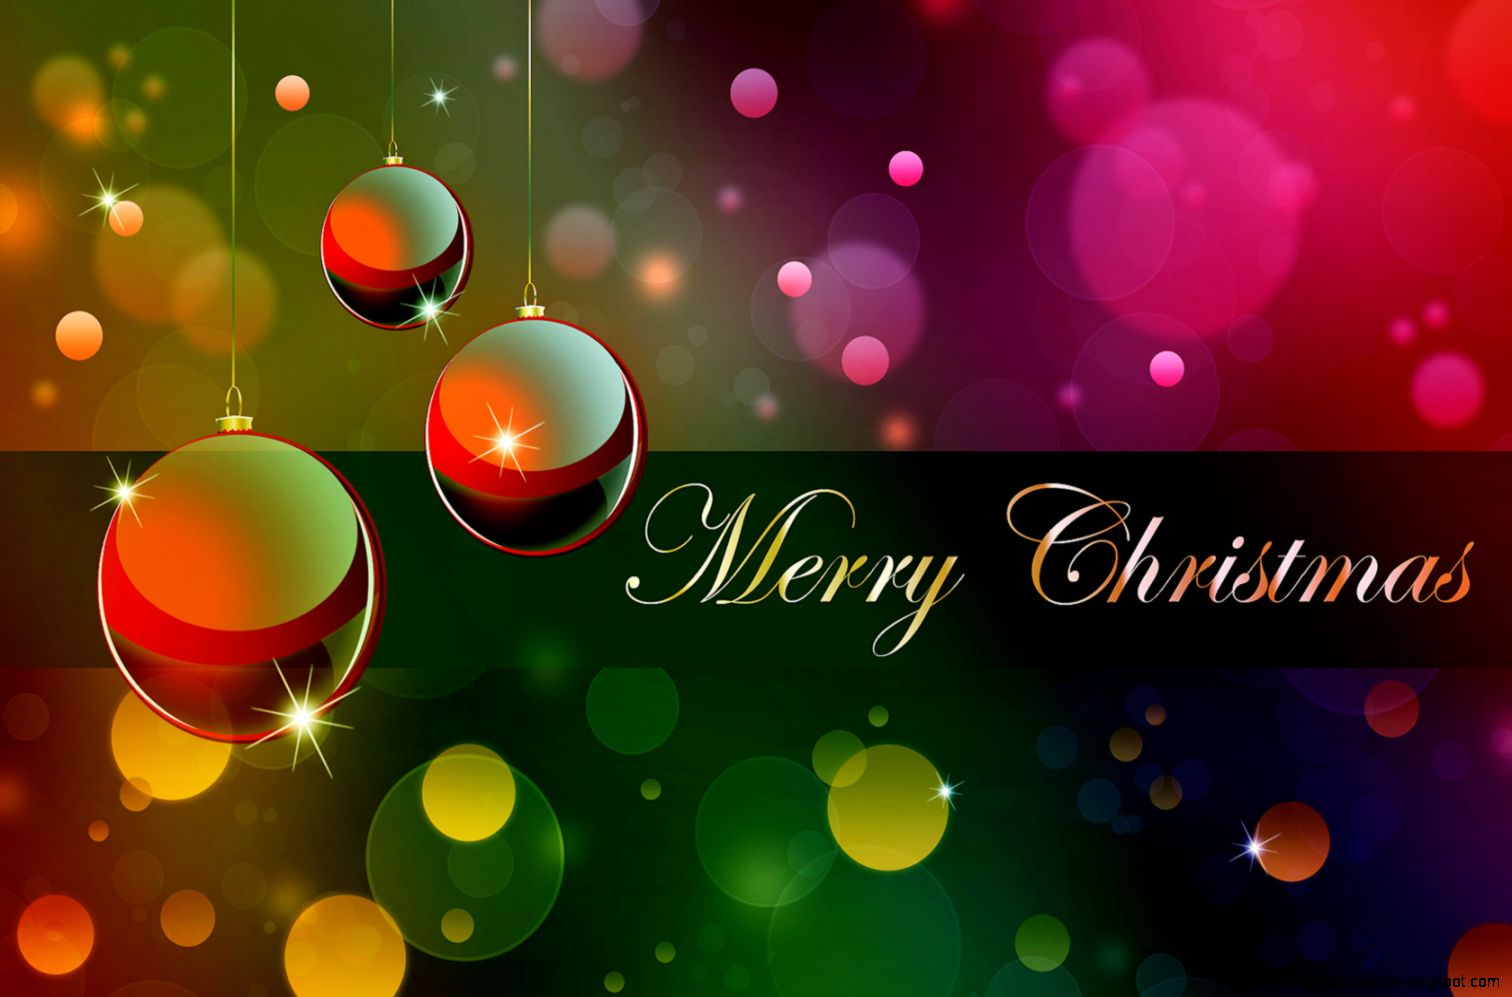 merry christmas wallpaper widescreen android